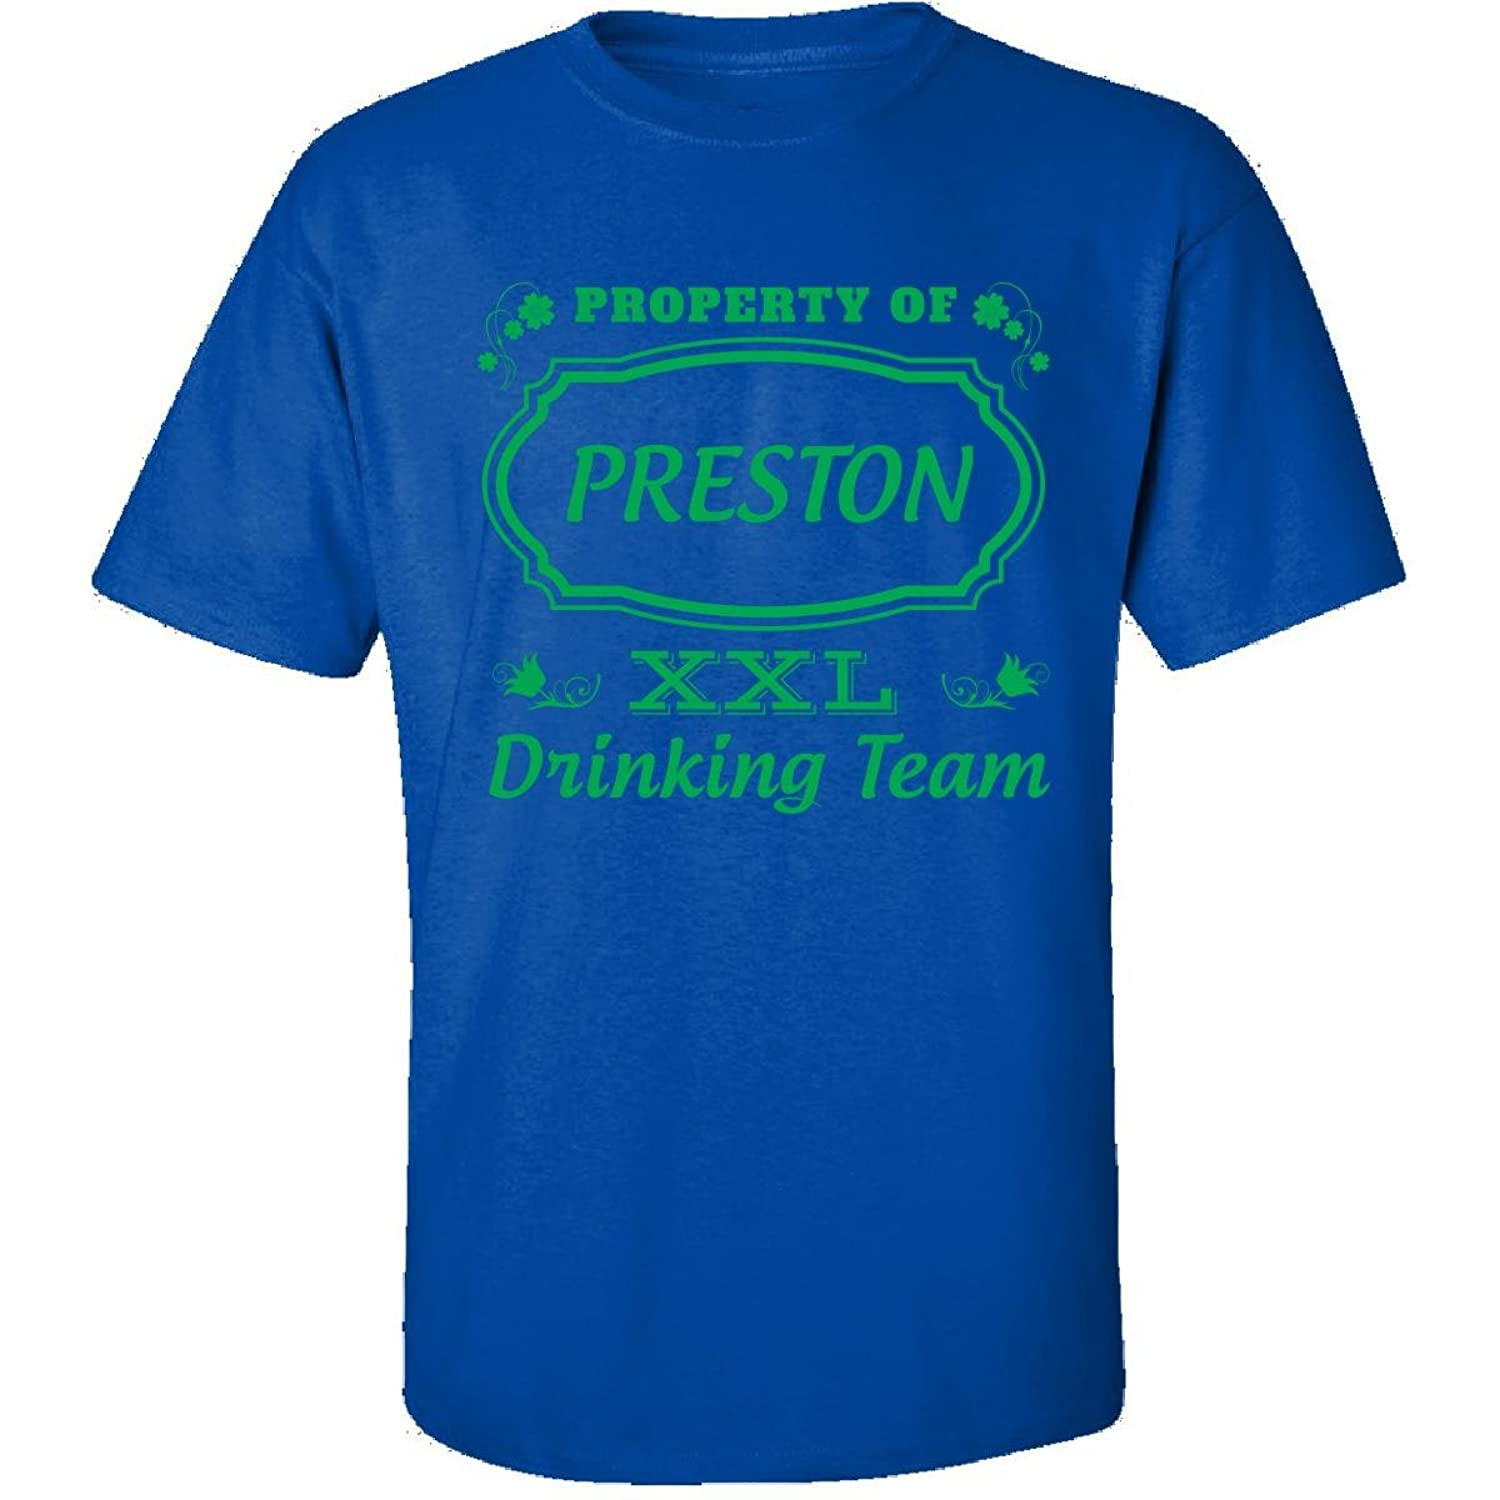 Property Of Preston St Patrick Day Beer Drinking Team - Adult Shirt